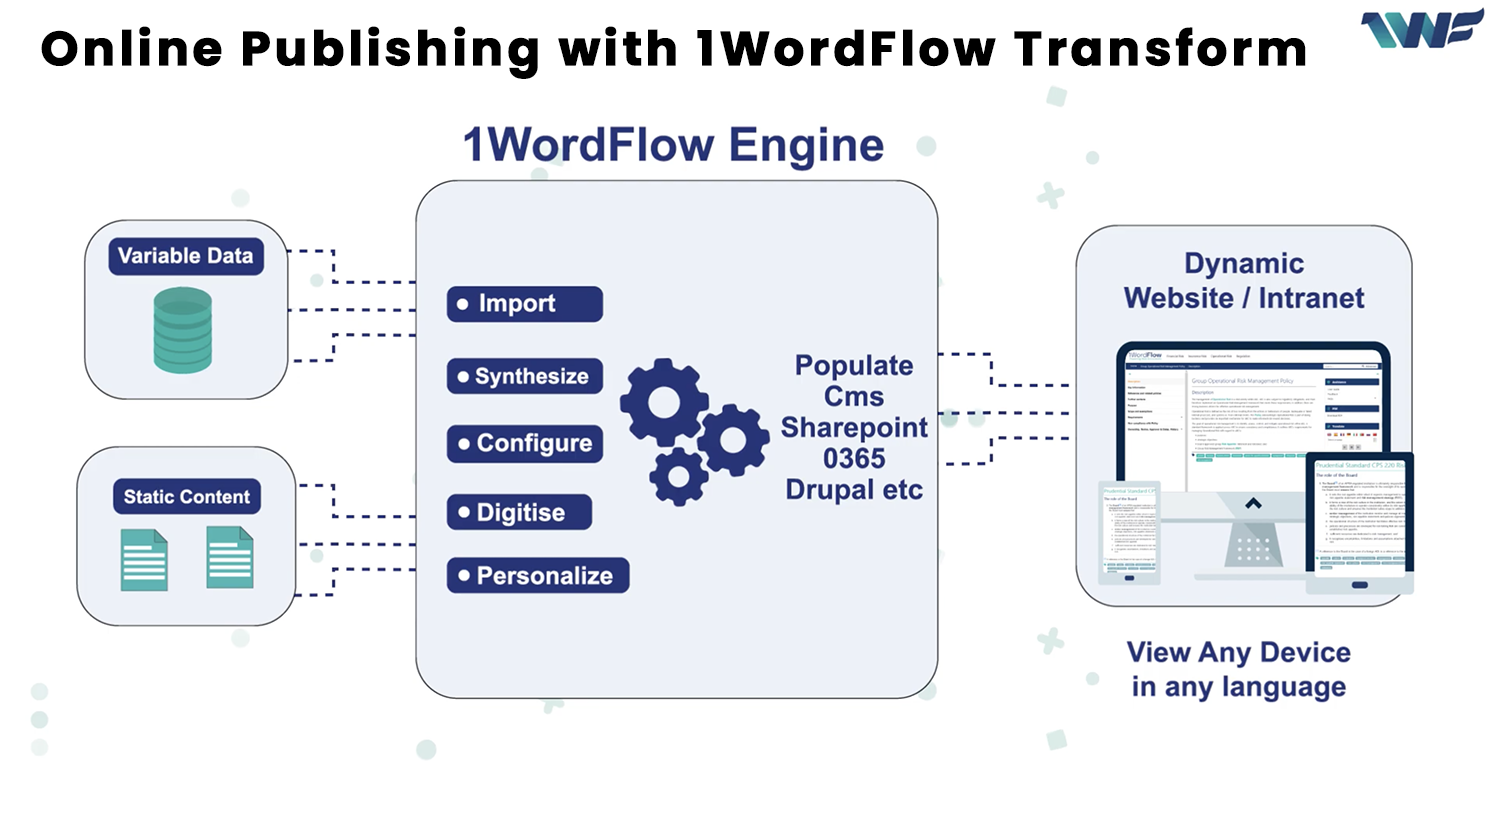 Online Publishing with 1WordFlow Transform